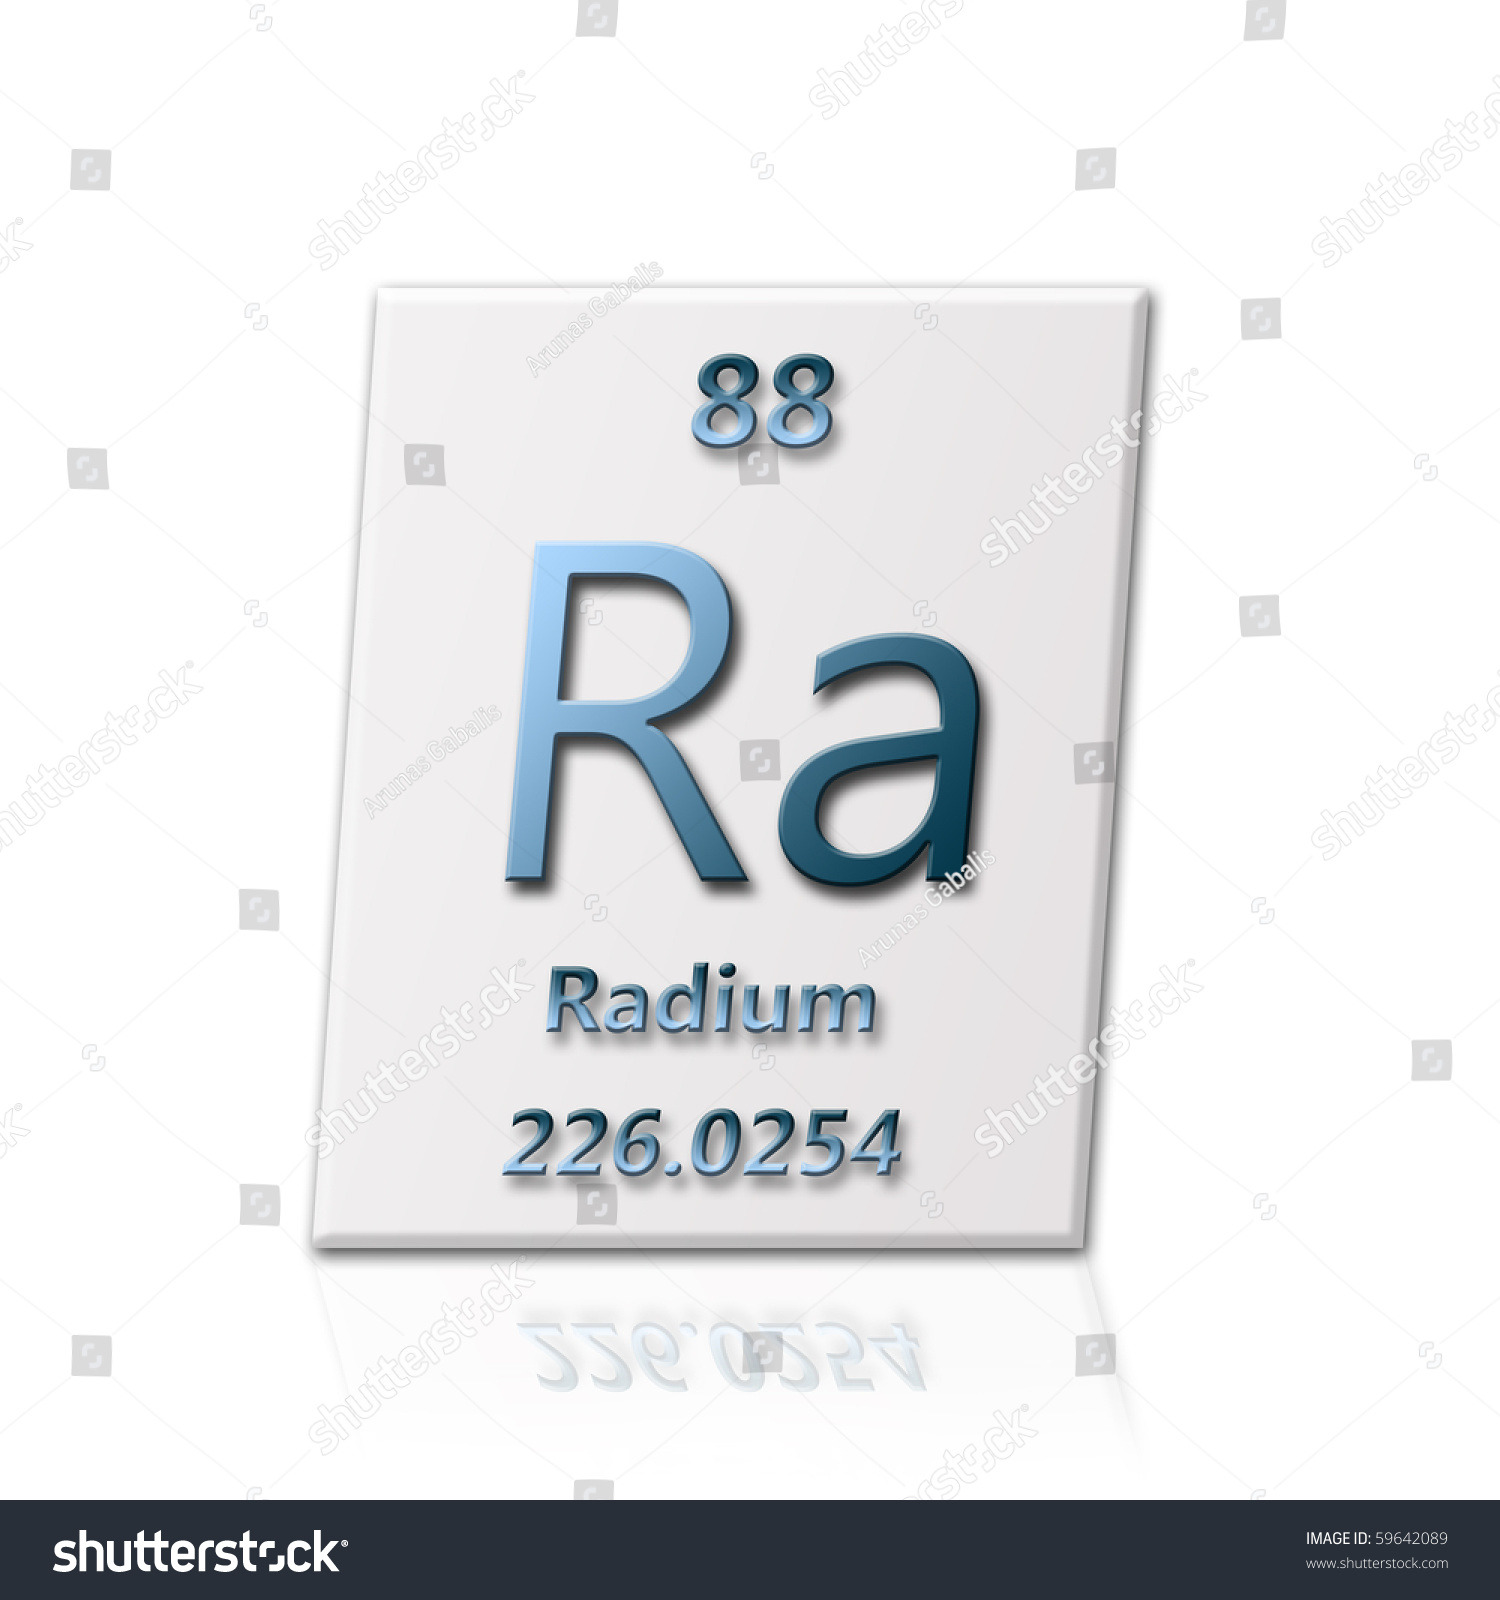 There chemical element radium all information stock illustration there is a chemical element radium with all information about it gamestrikefo Images